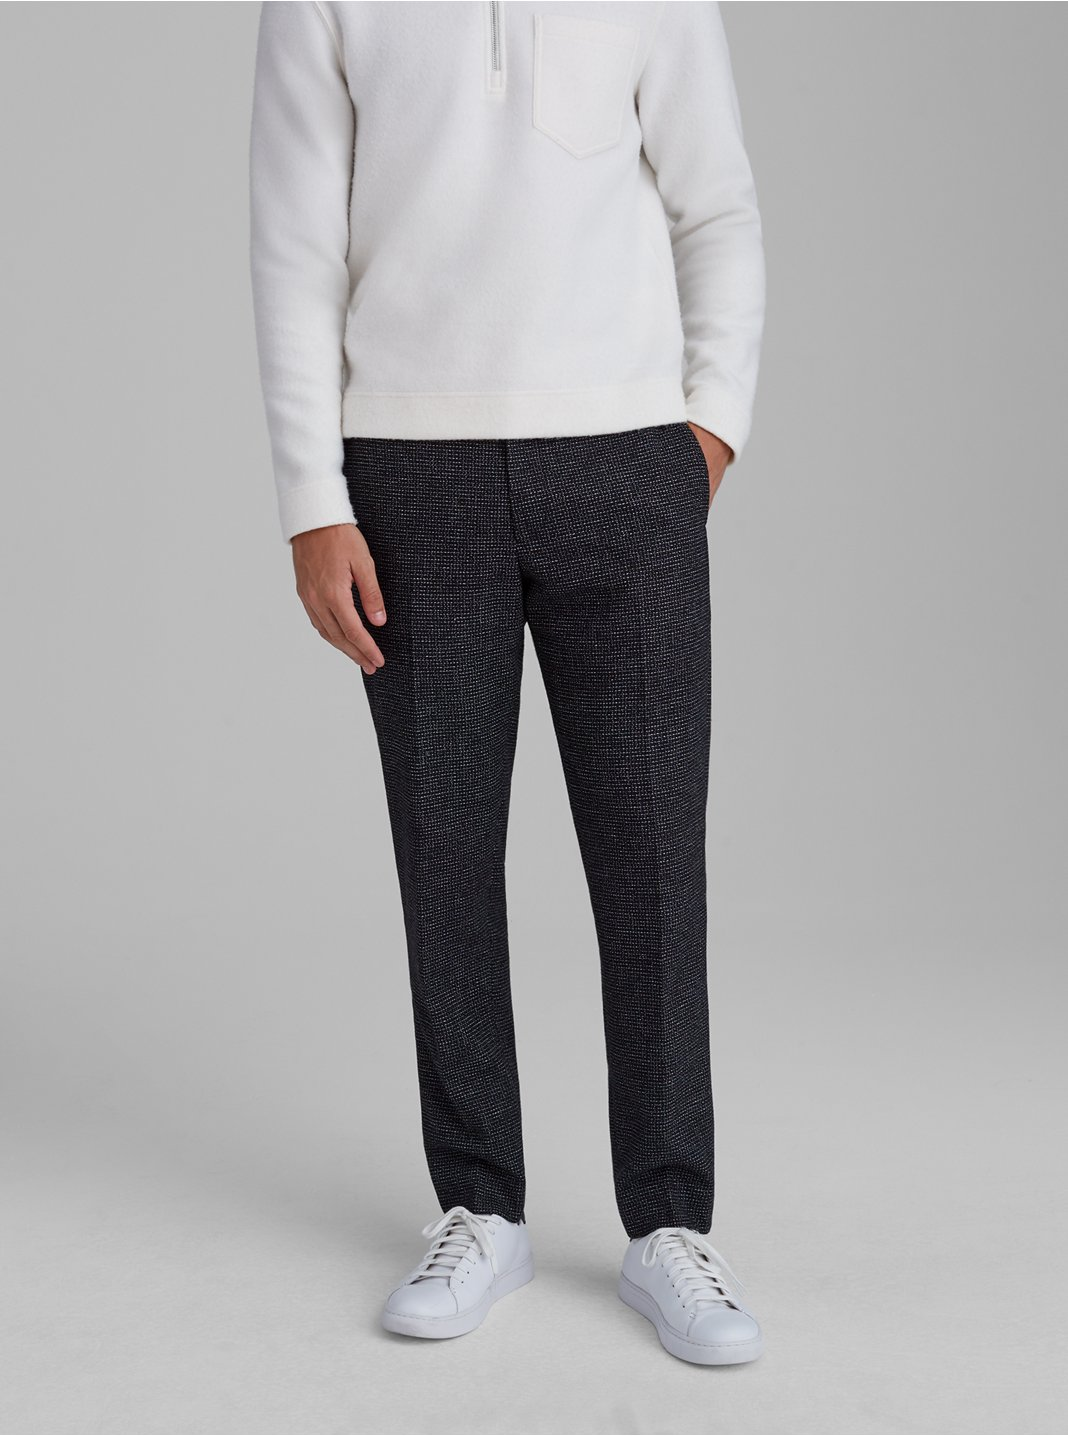 Sutton Textured Dress Pants